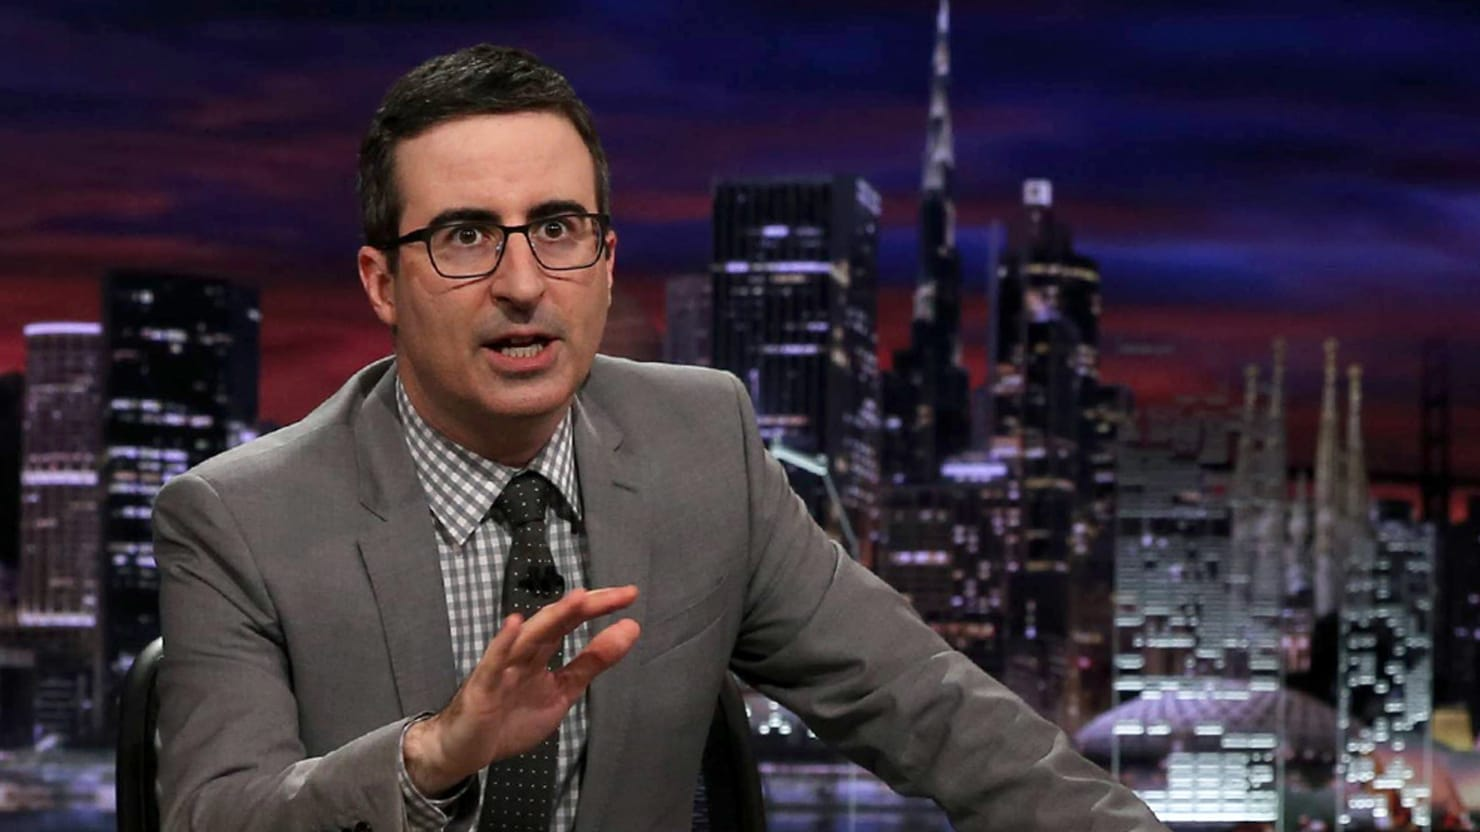 John Oliver: We Must Fight Trump, a 'Klan-Backed Misogynist Internet Troll'